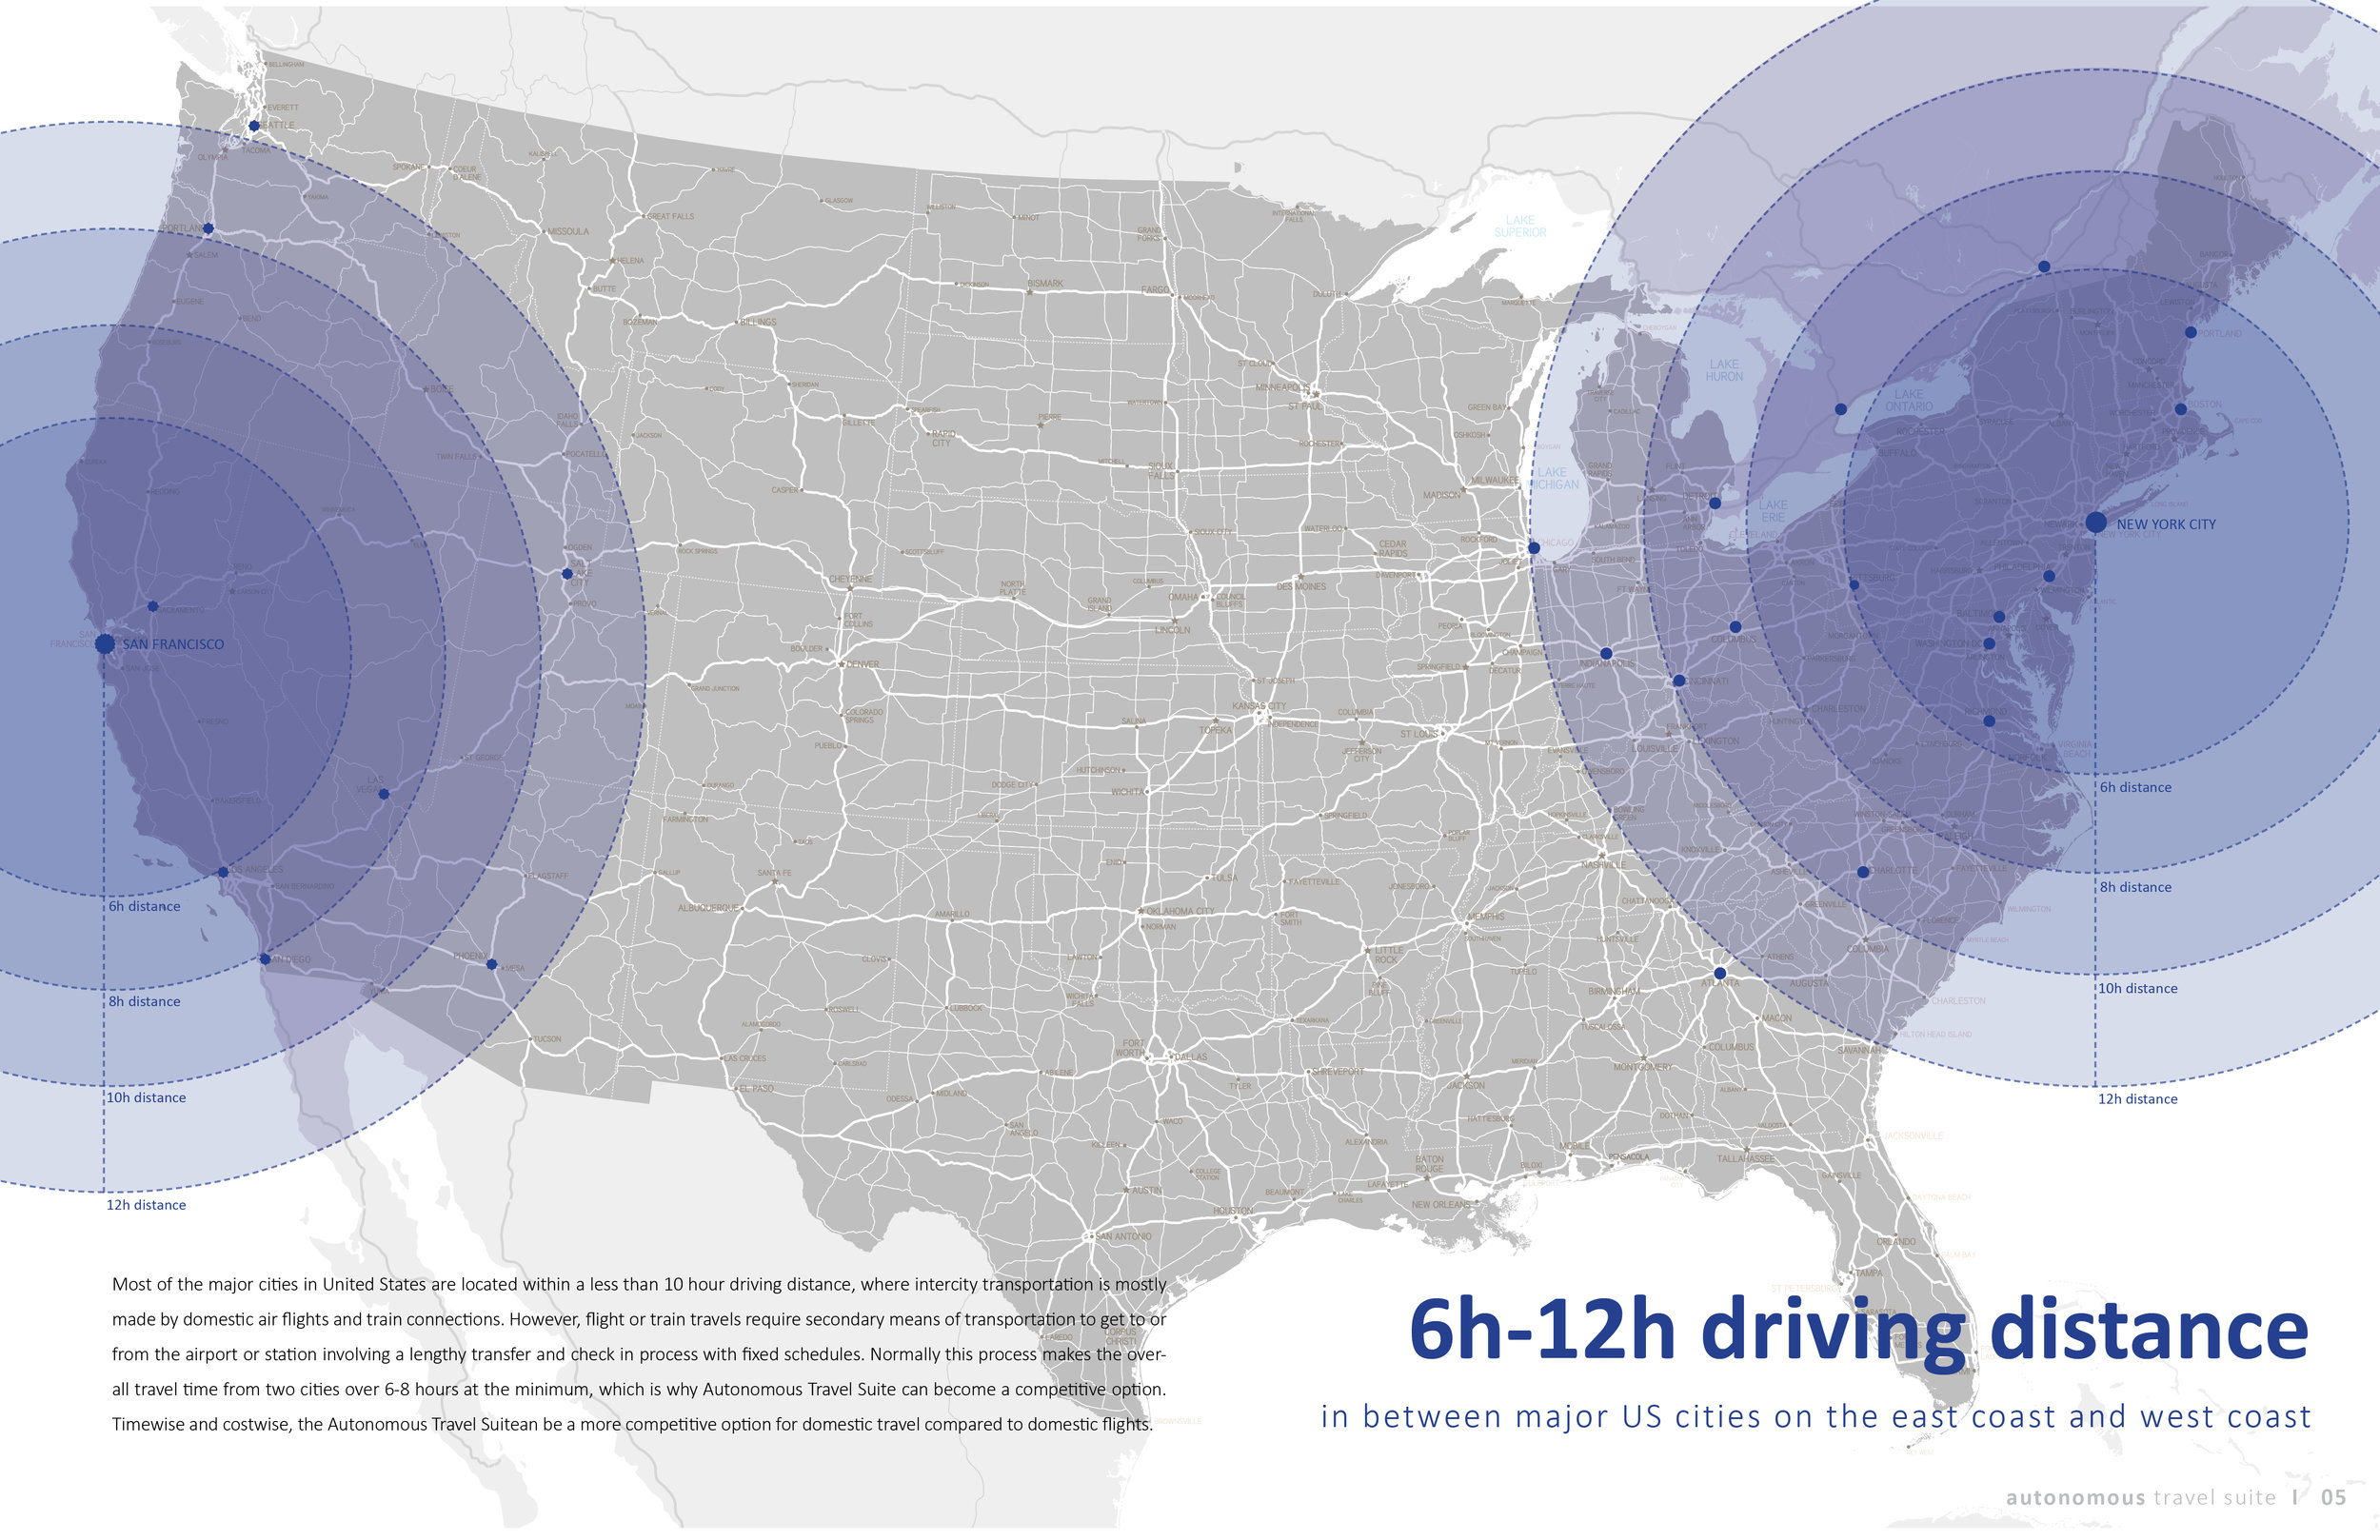 US MAJOR CITIES_DRIVING DISTANCE DIAGRAM2.jpg